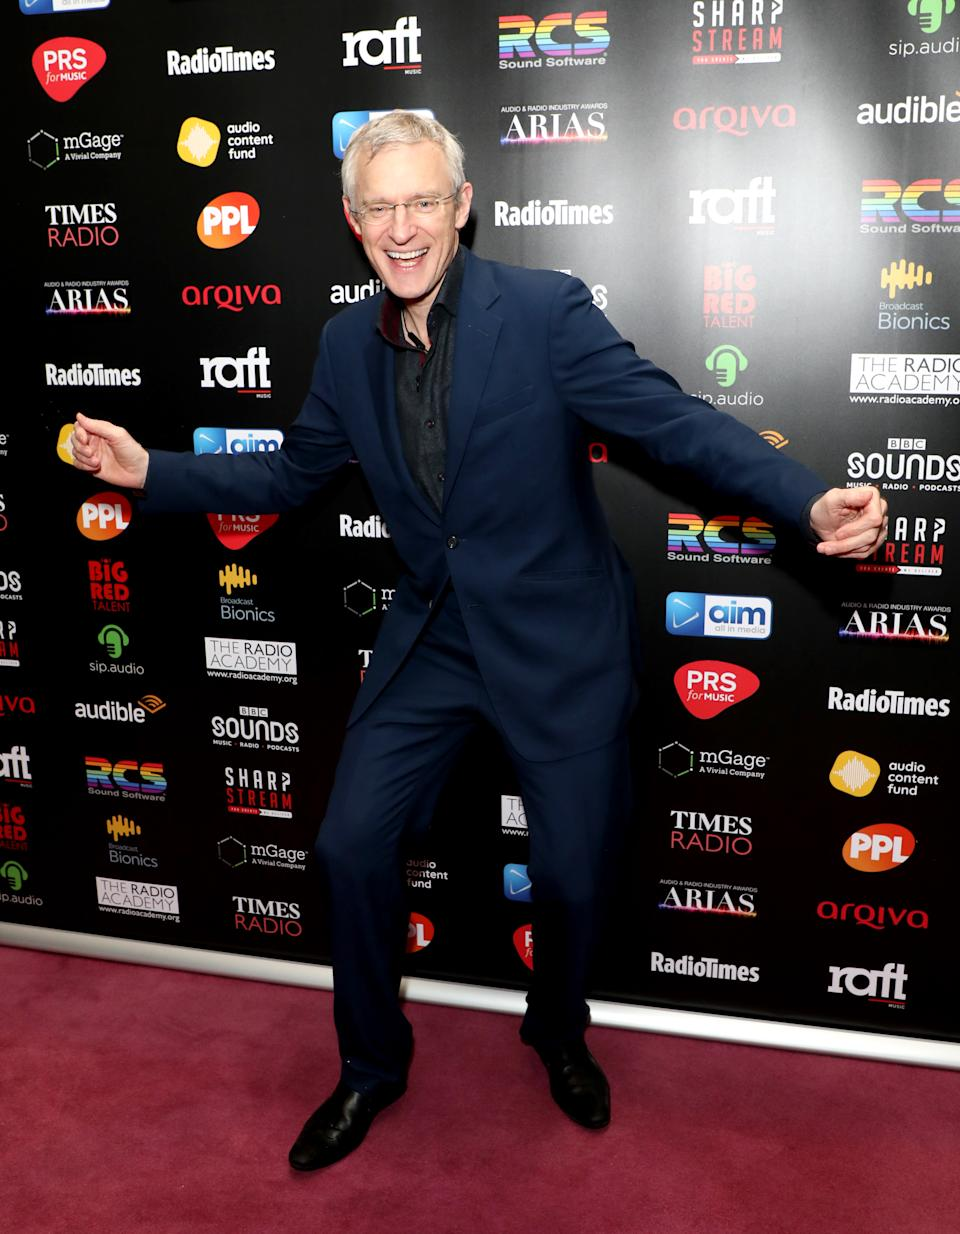 Jeremy Vine attending The Audio and Radio Industry Awards held at The London Palladium, London. (Photo by Lia Toby/PA Images via Getty Images)